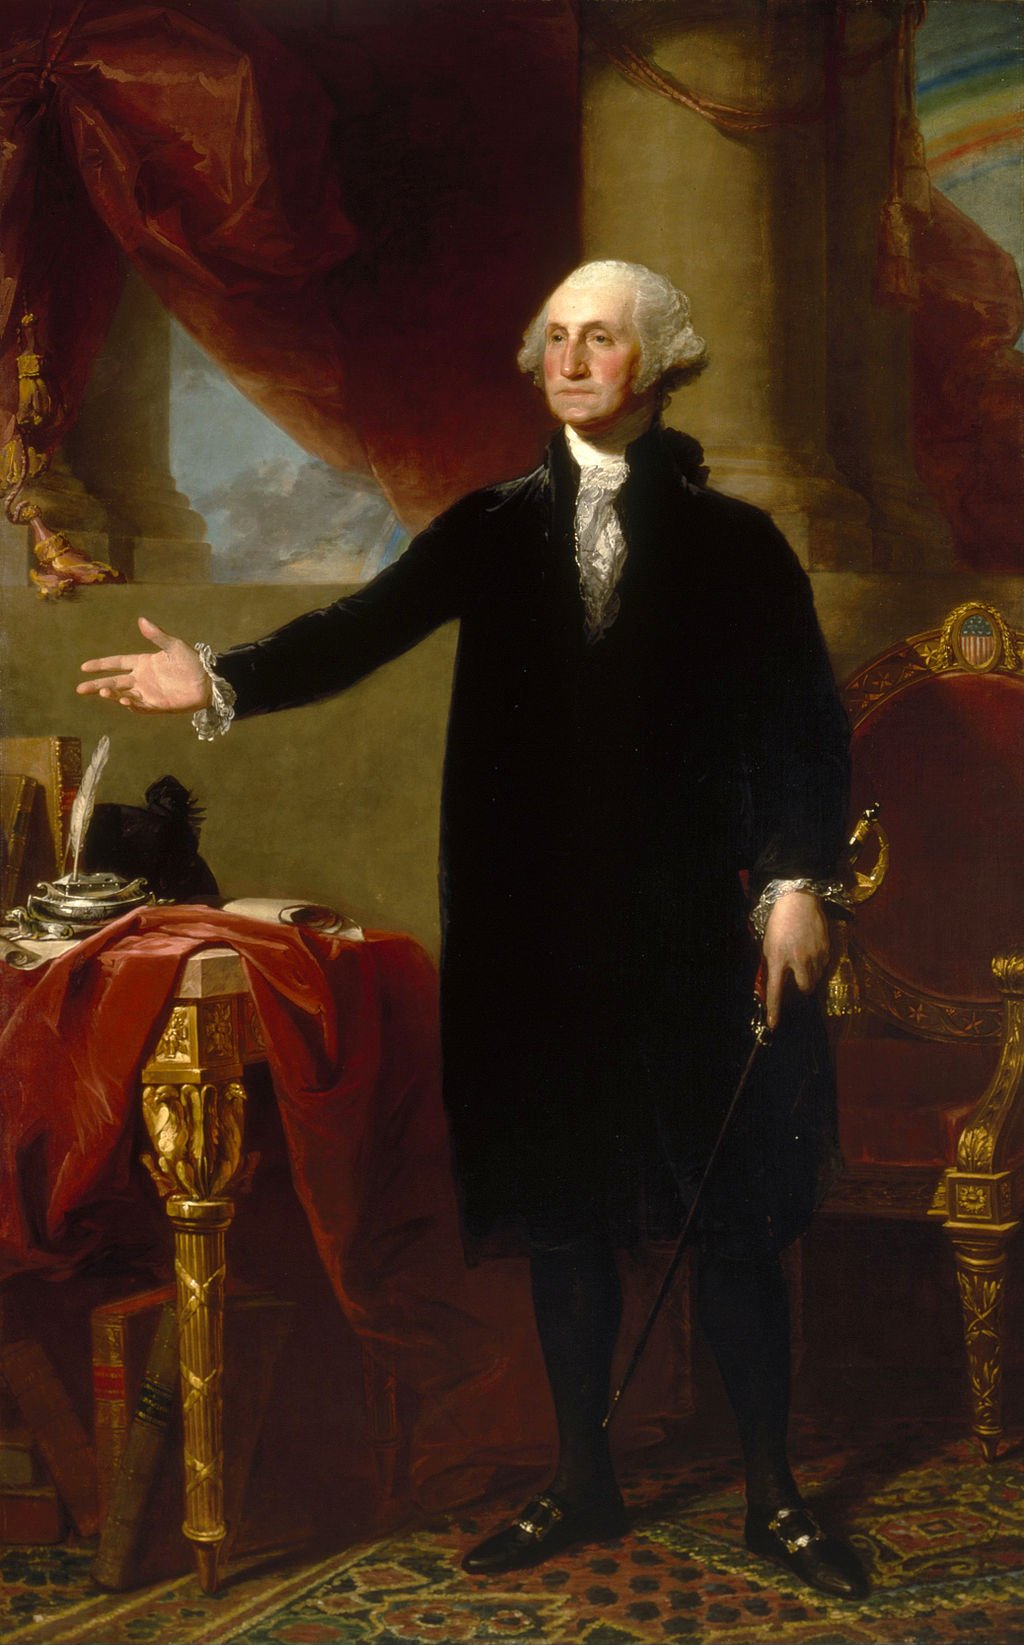 This portrait of George Washington, created by Gilbert Stuart in 1796, showed a young nation what an American president looked like. Known as the Lansdowne portrait for its original owner, it depicts Washington in professional attire and surrounded b